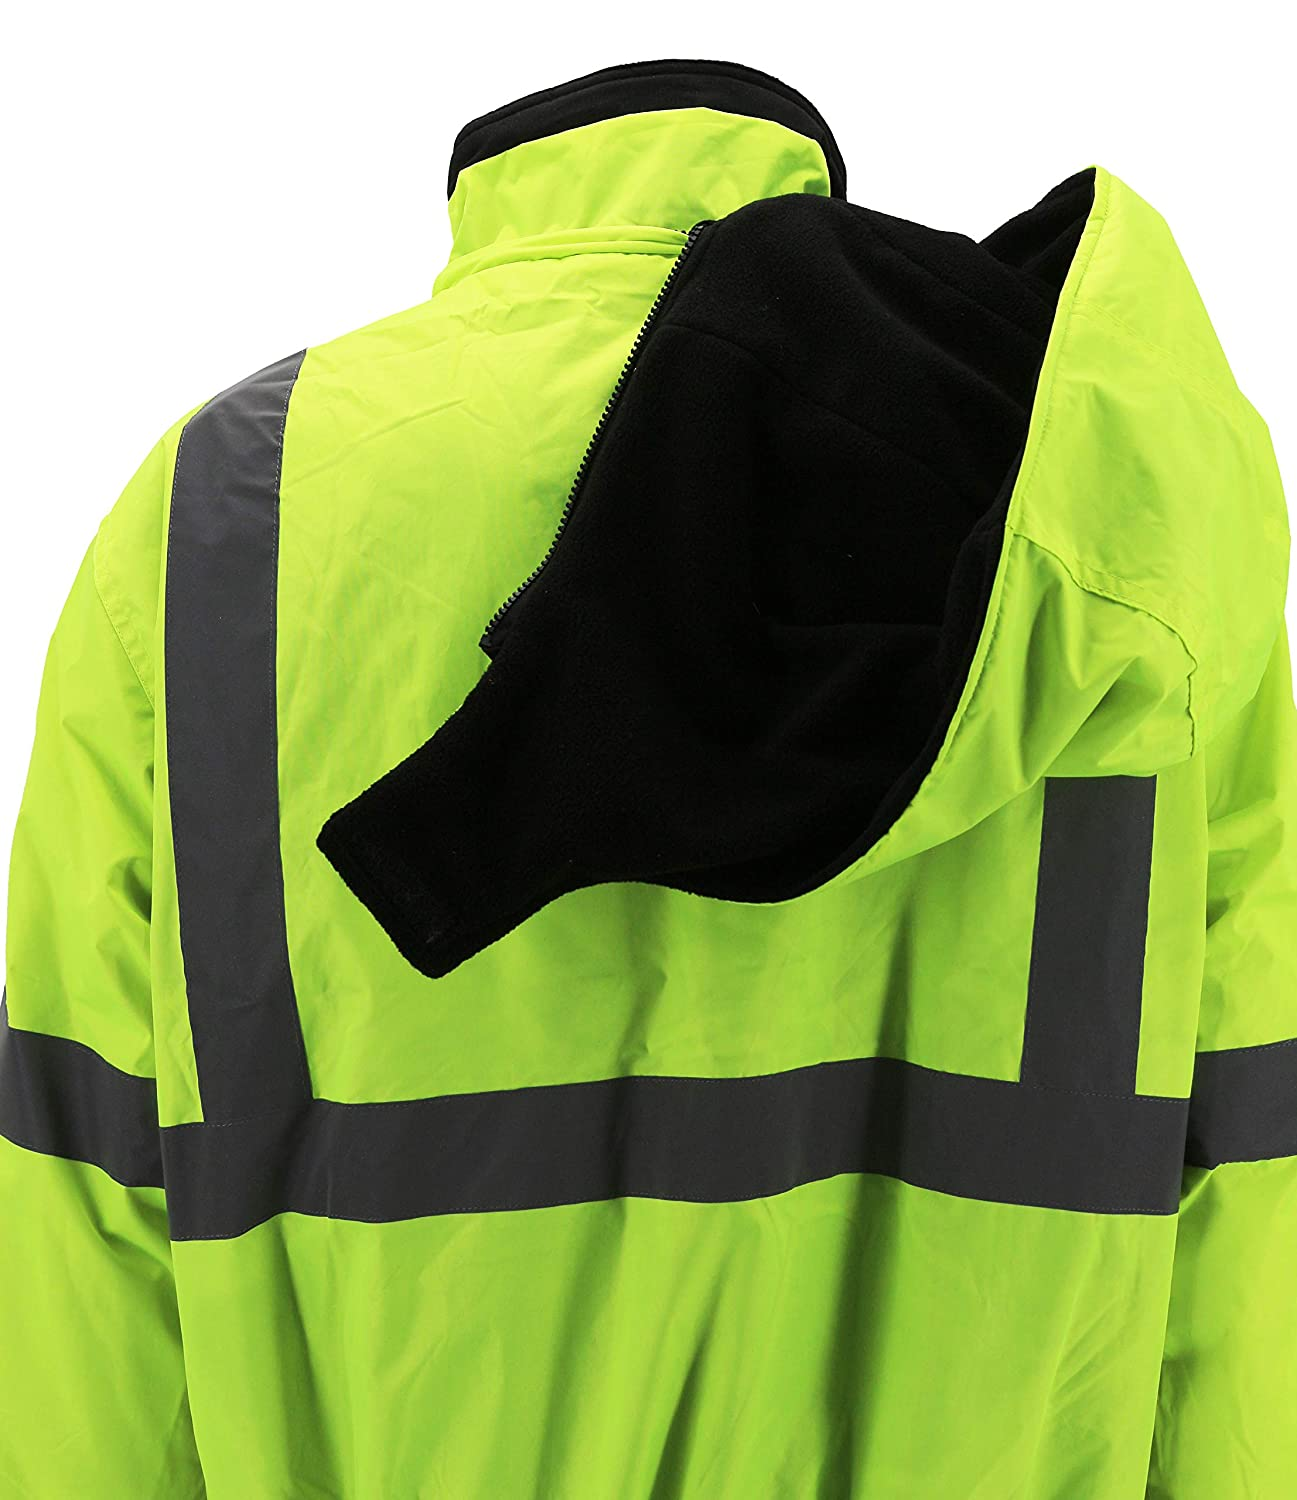 vkwear Mens Class 3 Safety High Visibility Reflective Neon Work Jacket